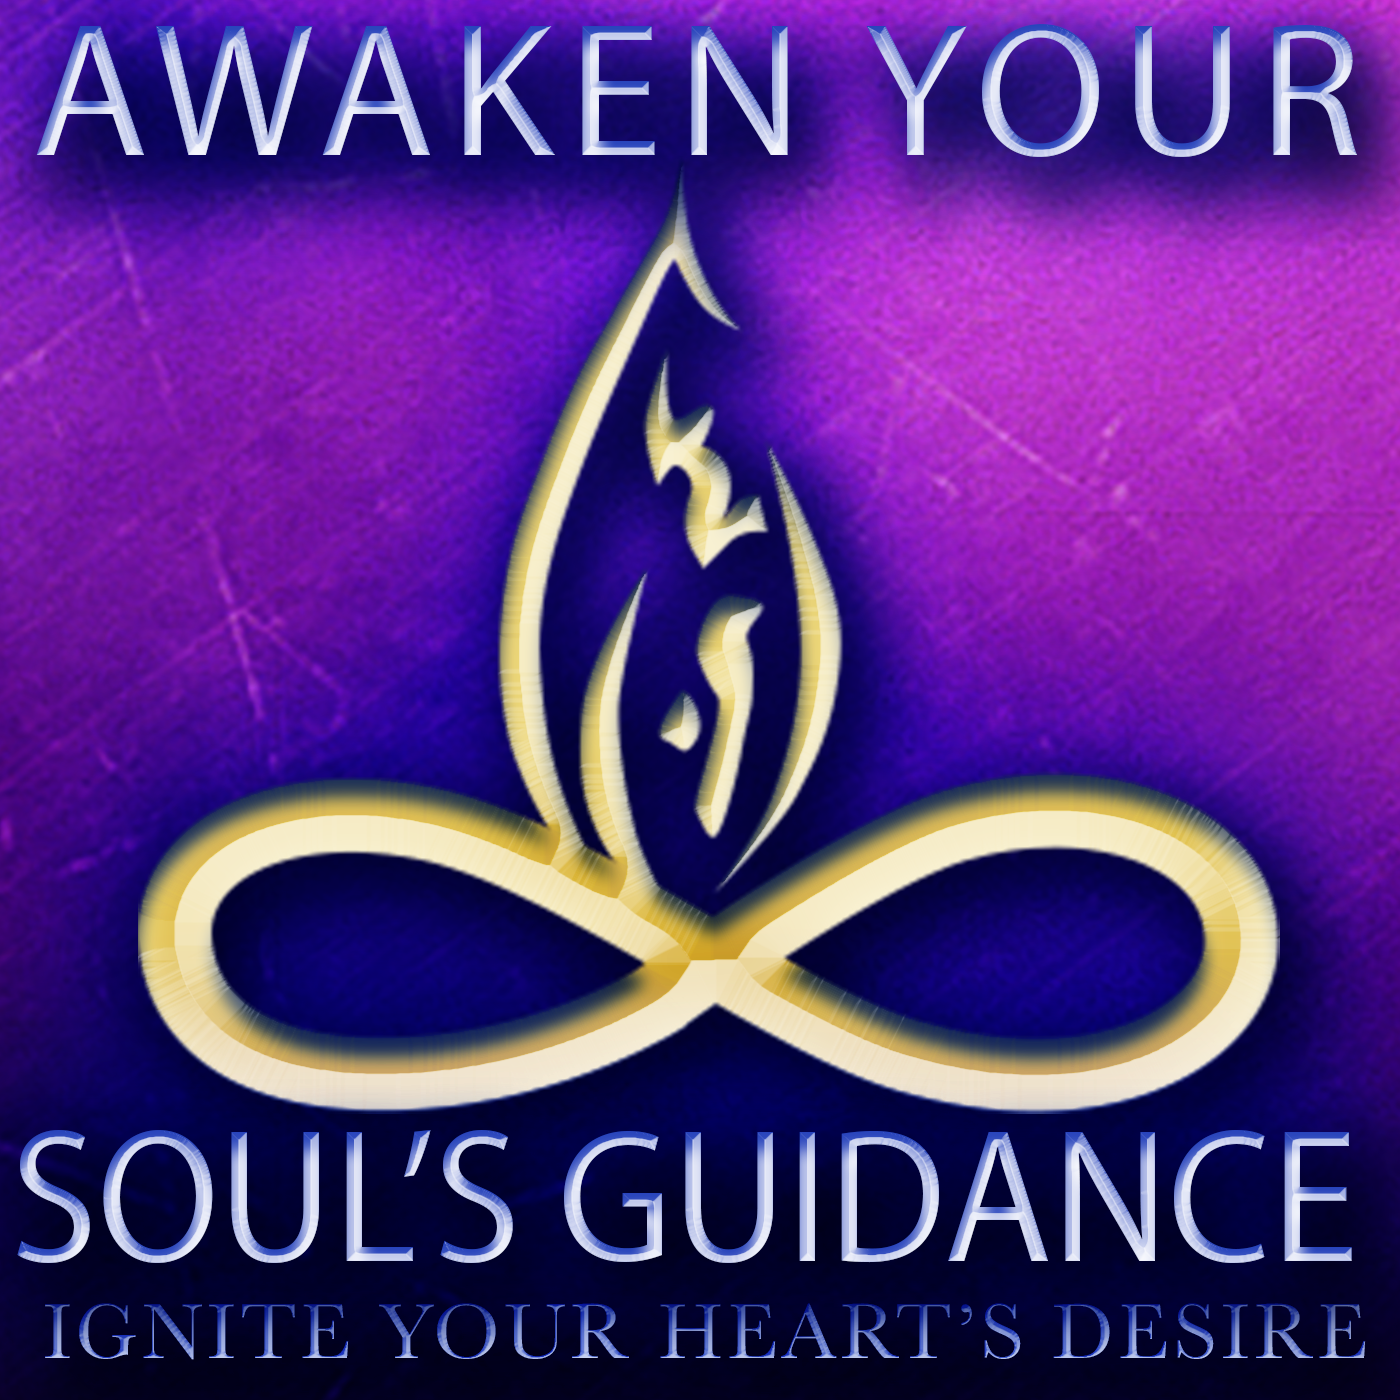 Awaken Your Soul's Guidance show image